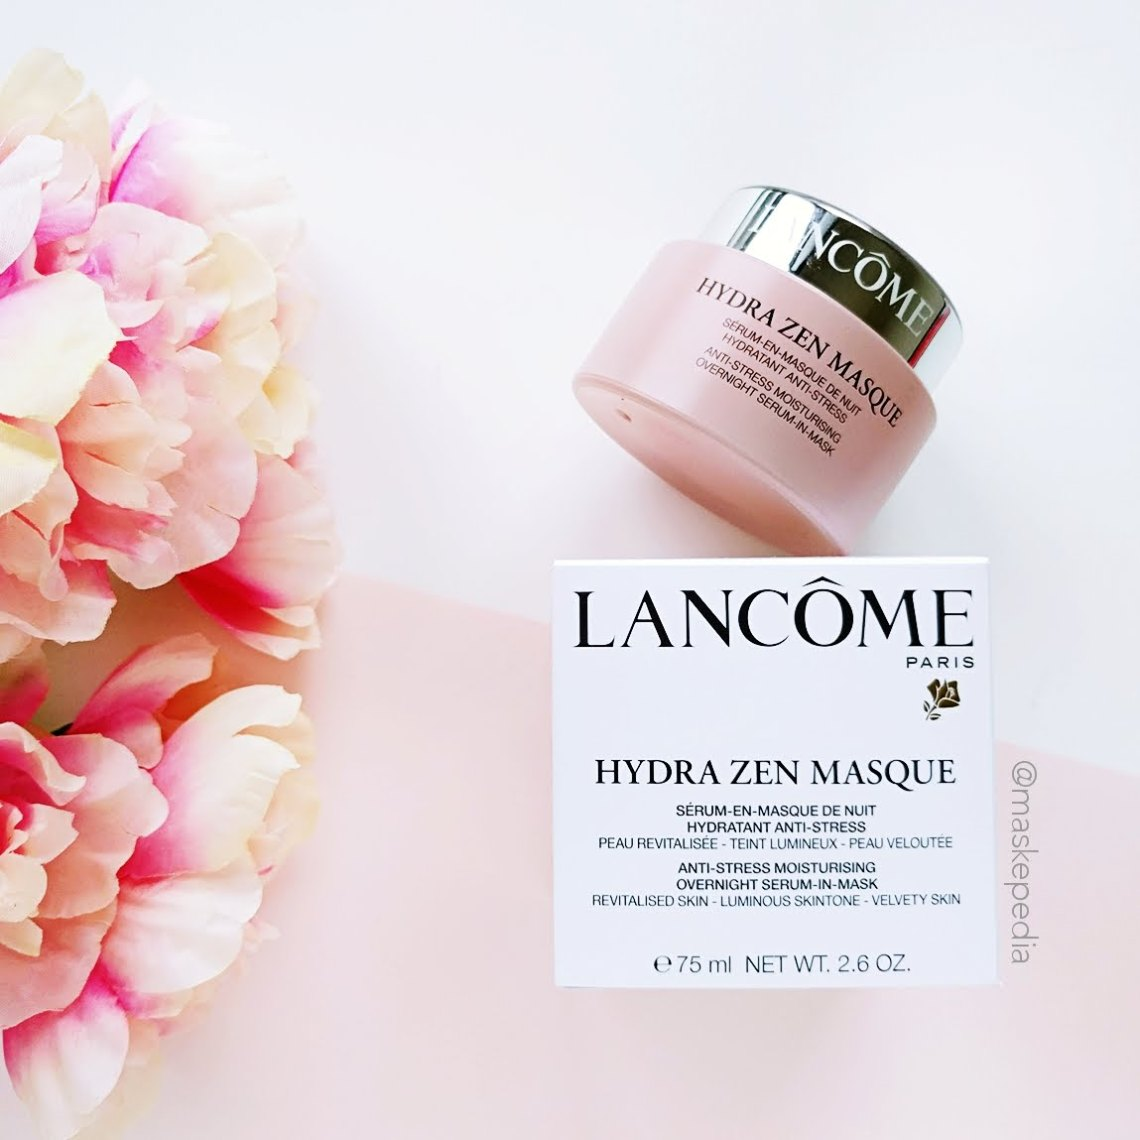 Lancôme Hydra Zen Anti-Stress Moisturizing Overnight Serum-in-Masque